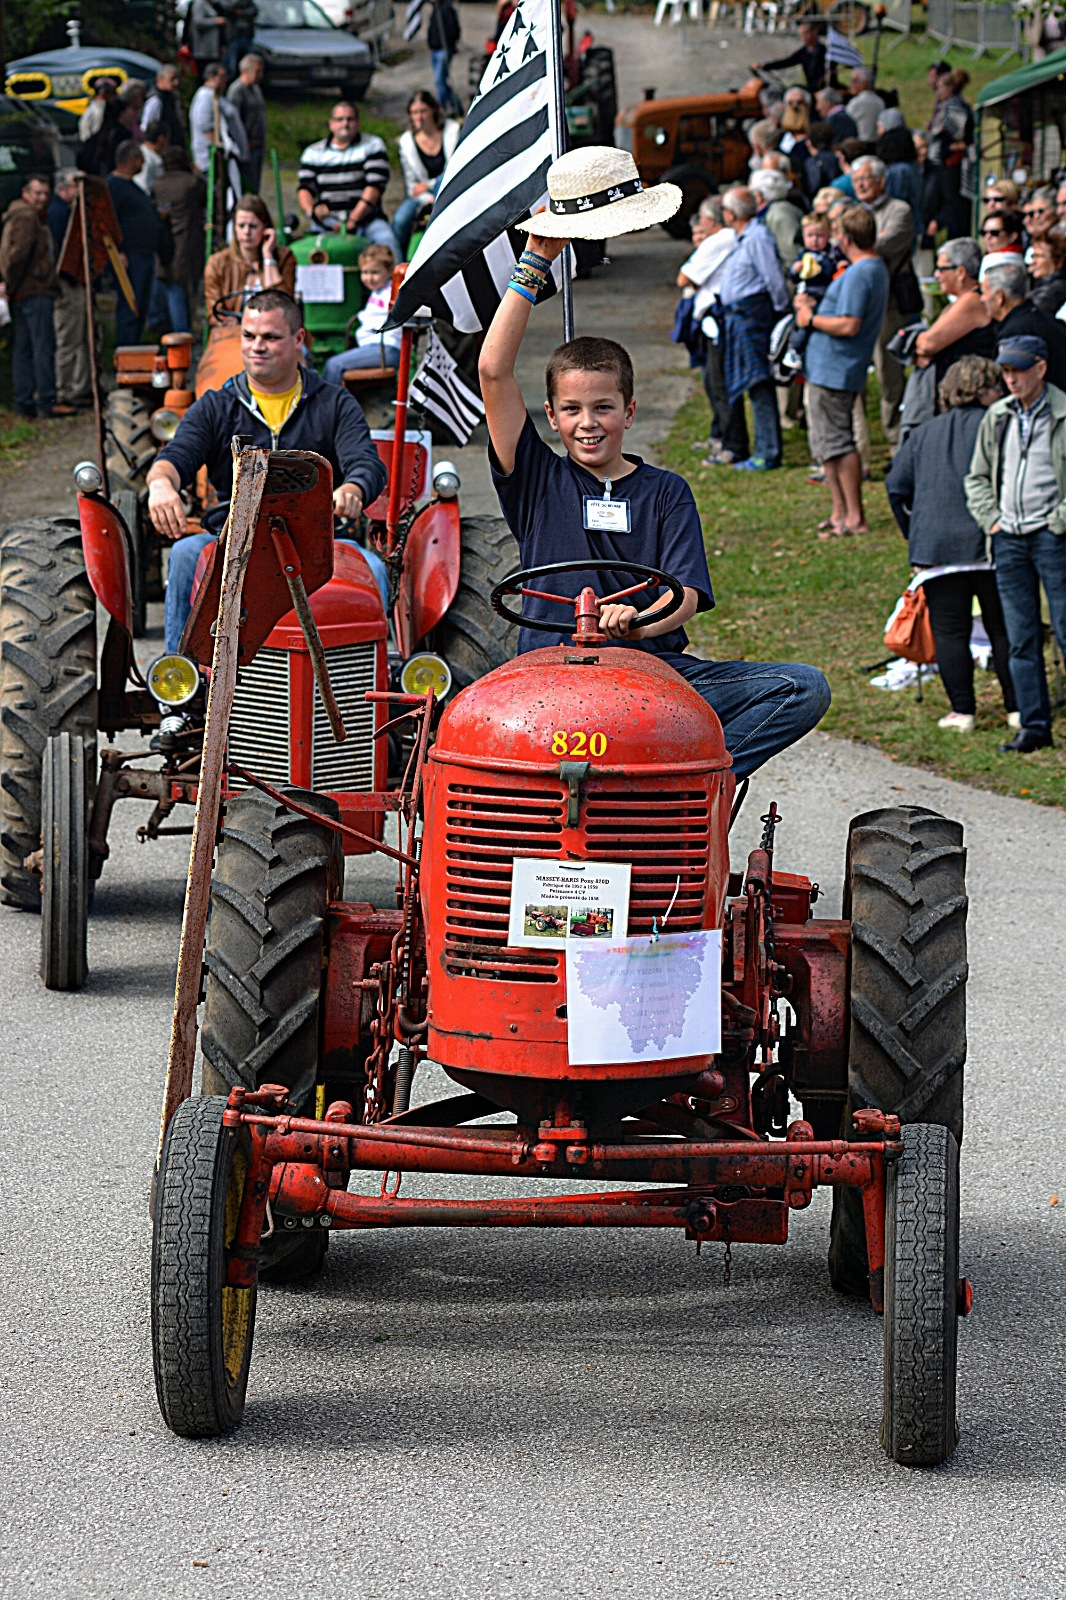 hats of to the little red tractor by Rob Helliker